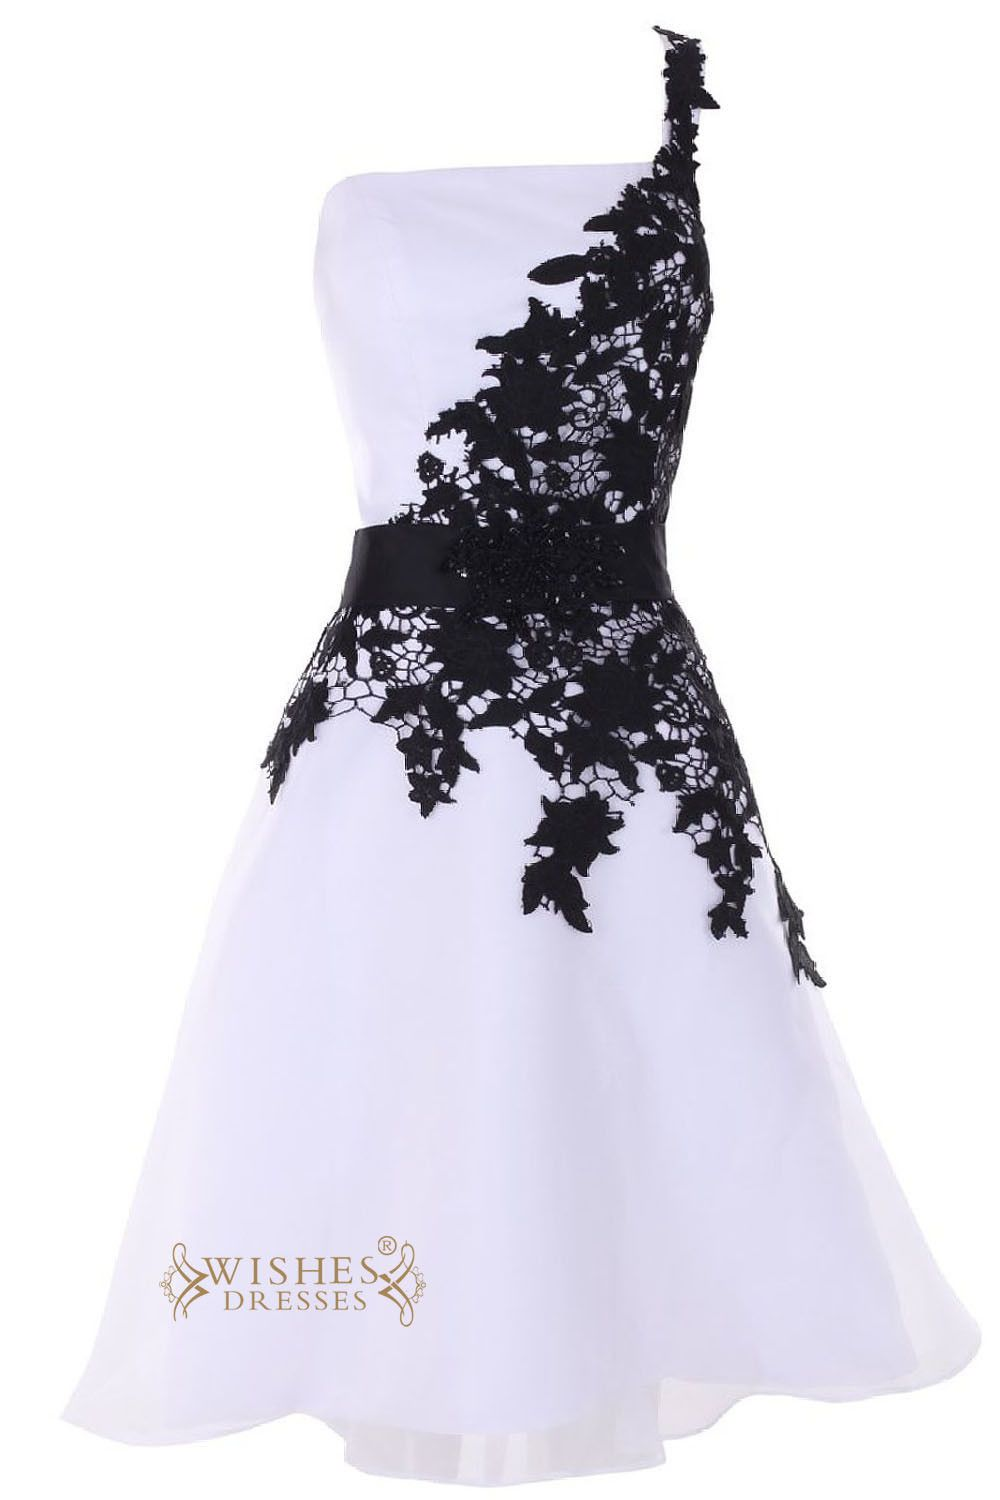 Asymmetrical black lace one shoulder cocktail dress short prom